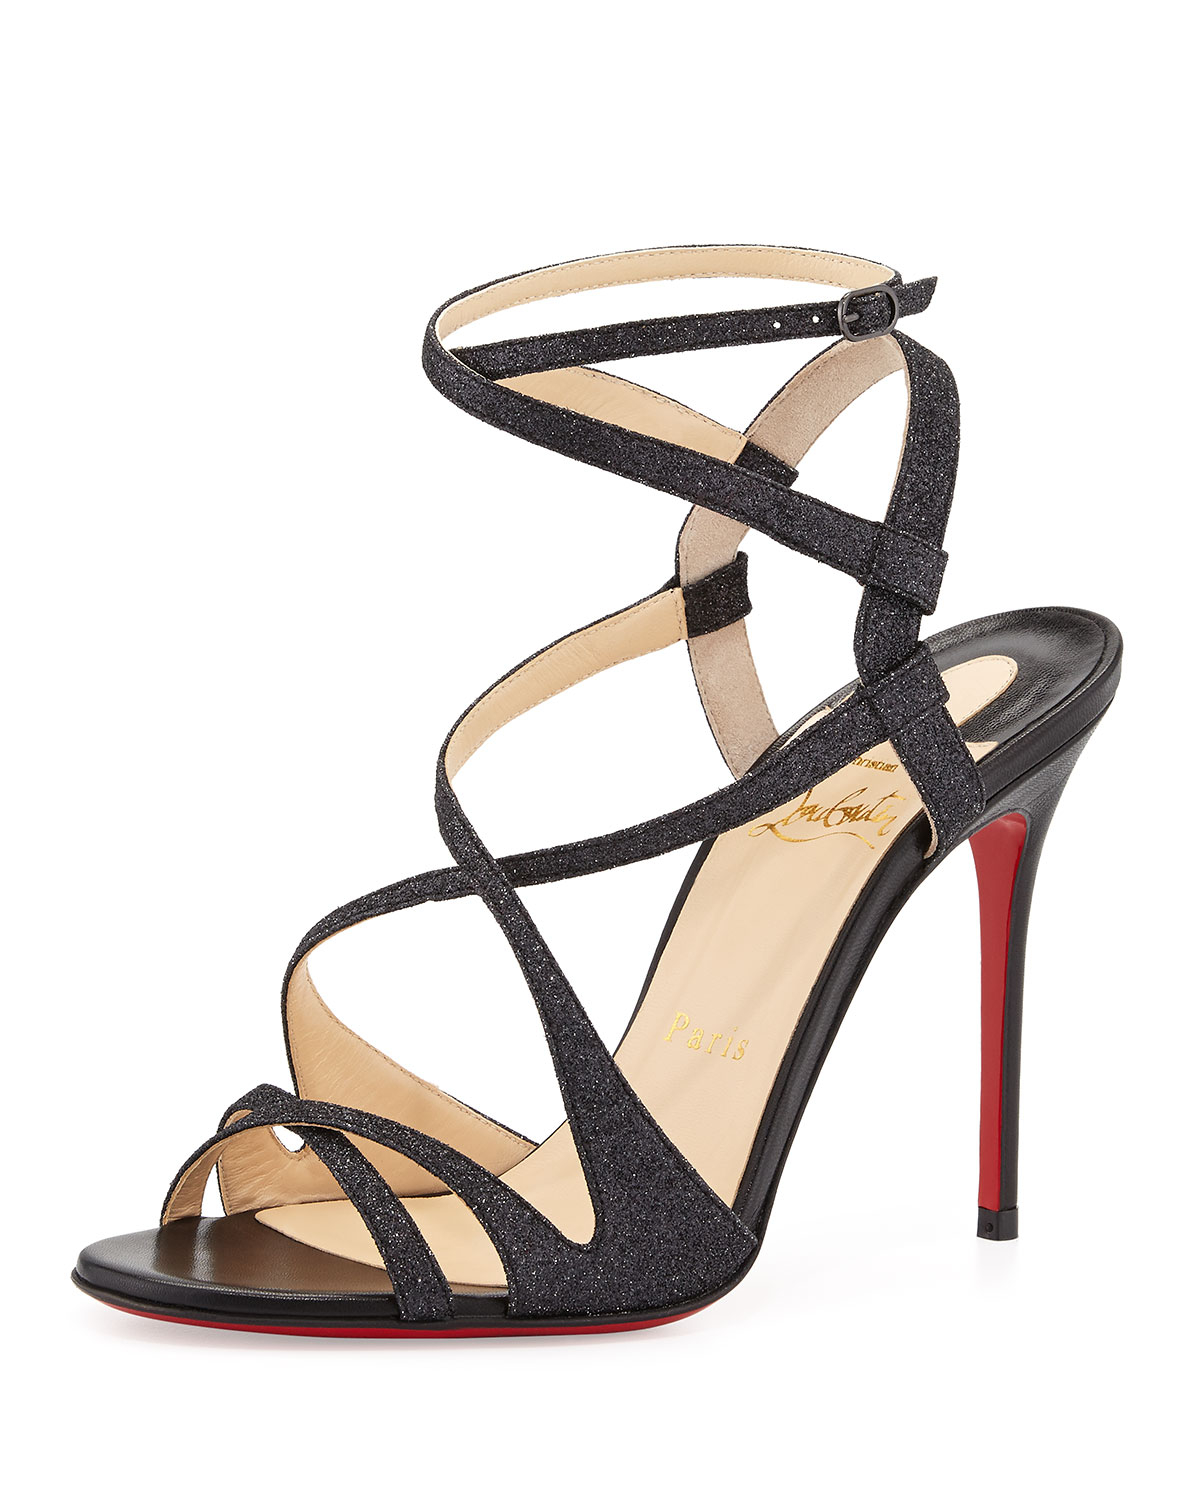 christian louboutin sandals Black patent leather glitter covered ...